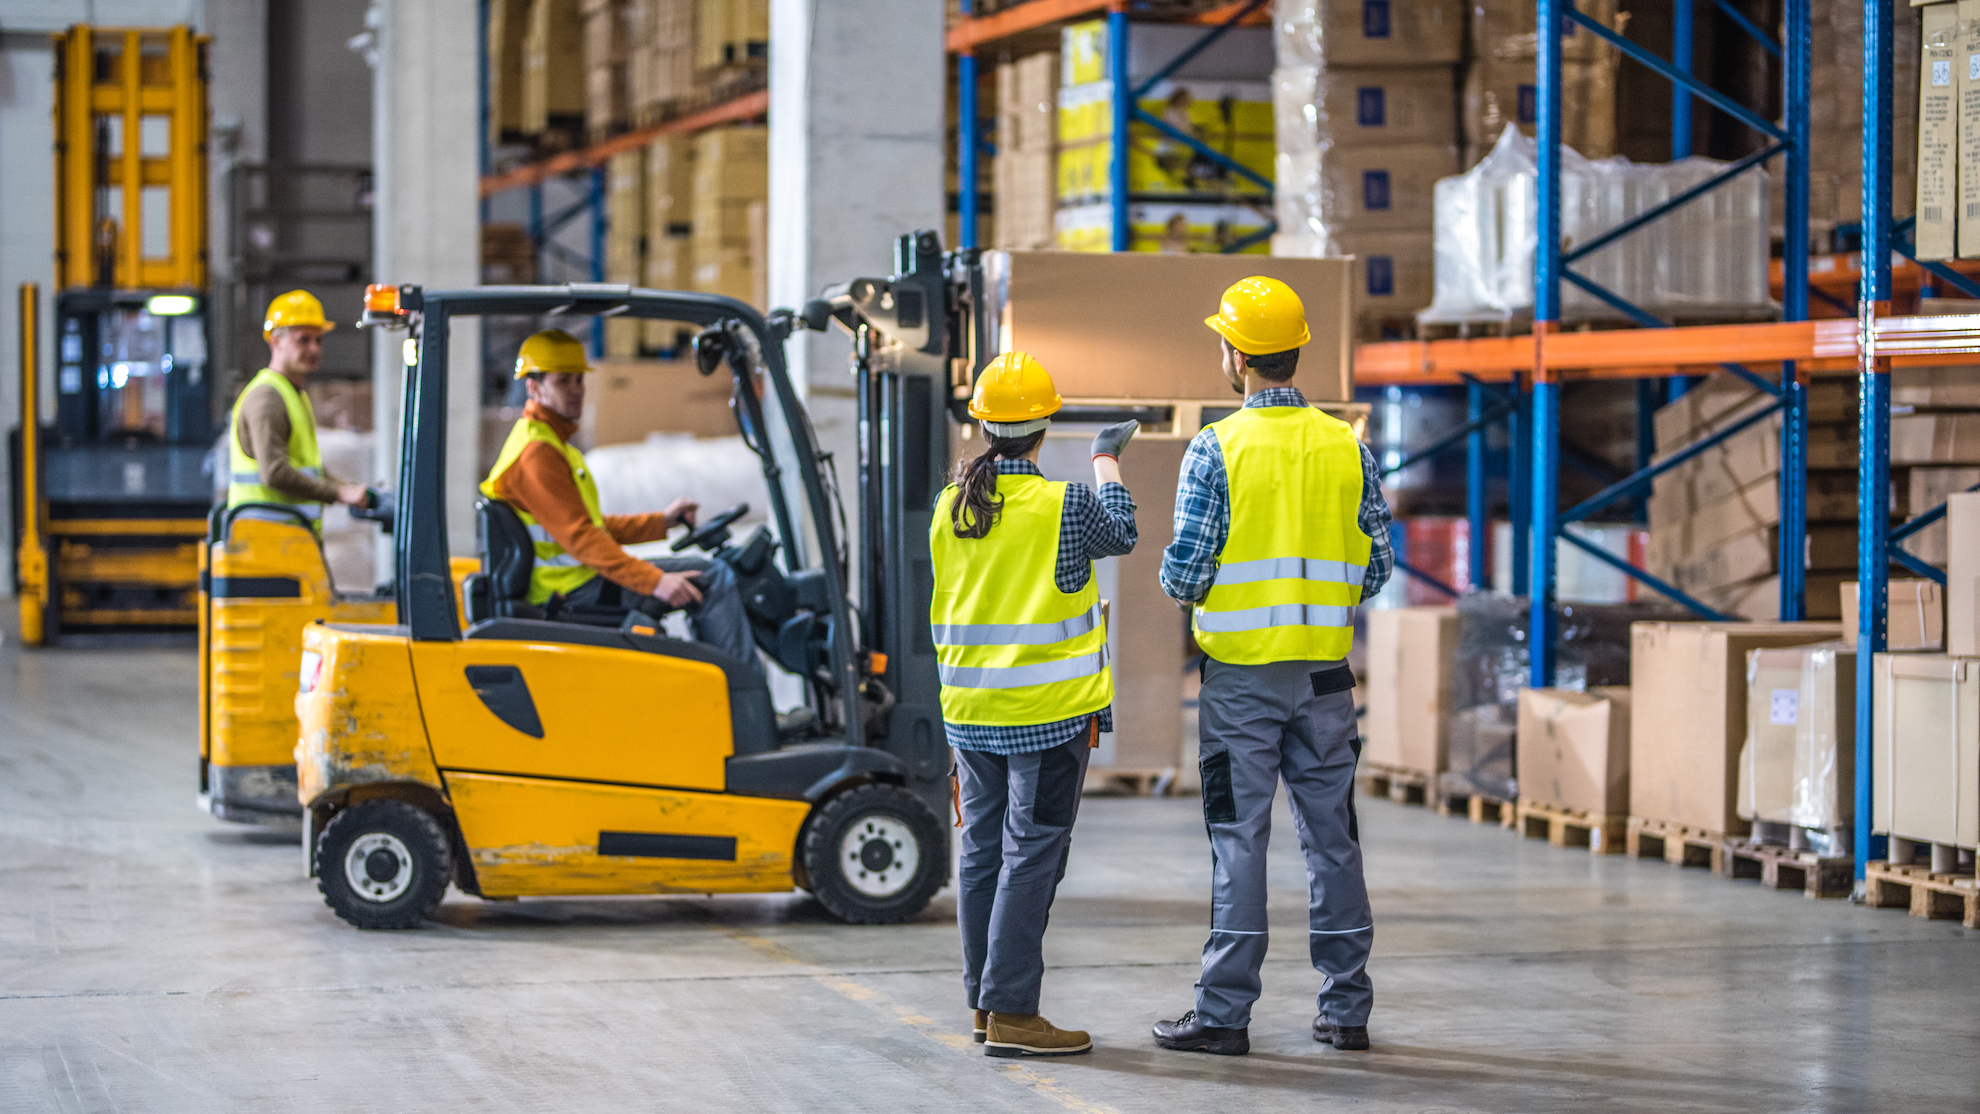 Male and female worker working in warehouse.